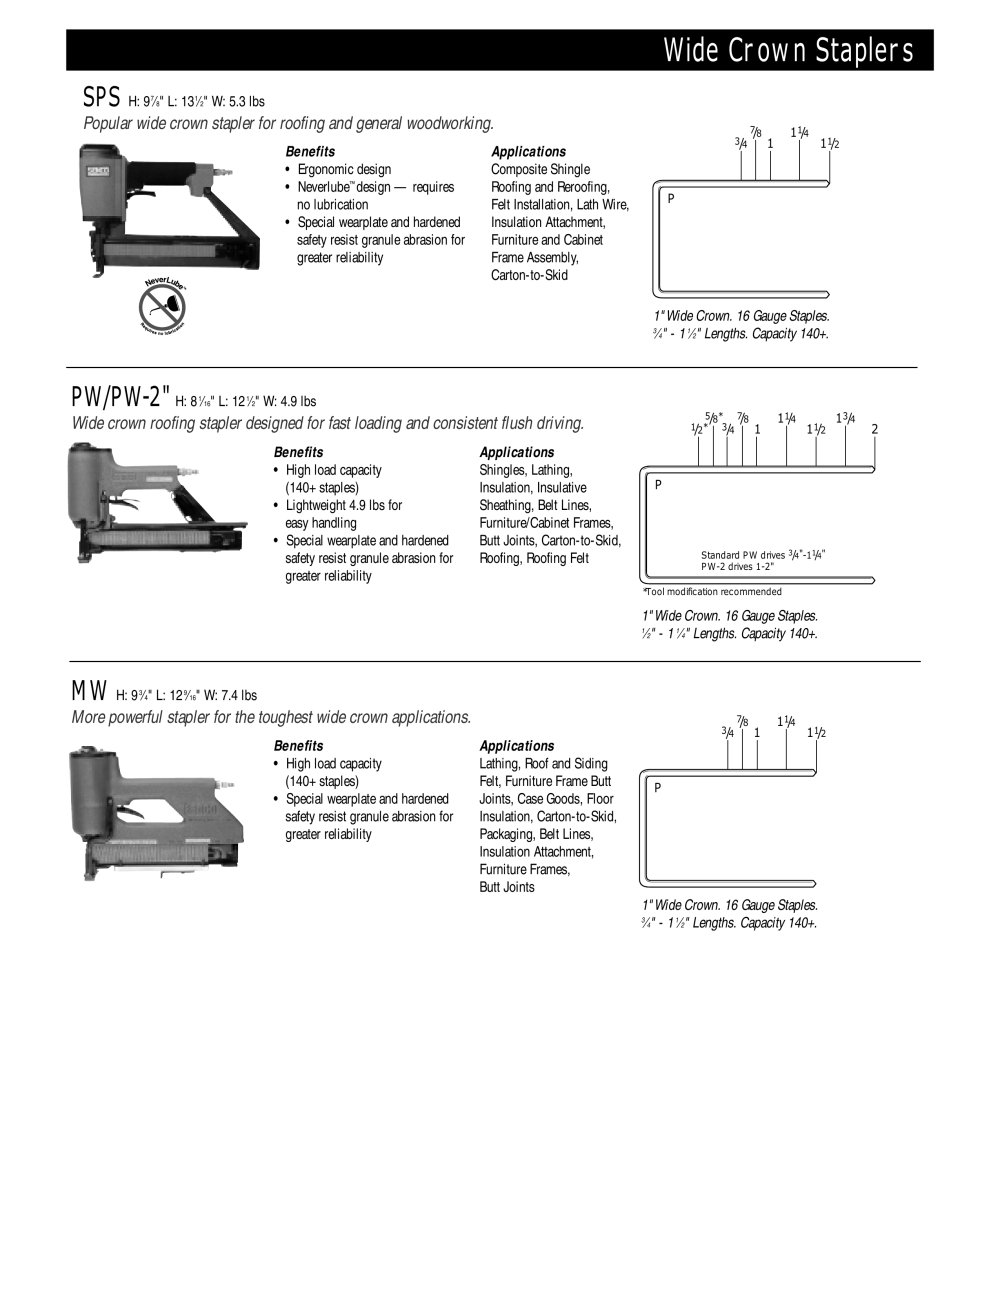 widecrown staplers 1 1 pages